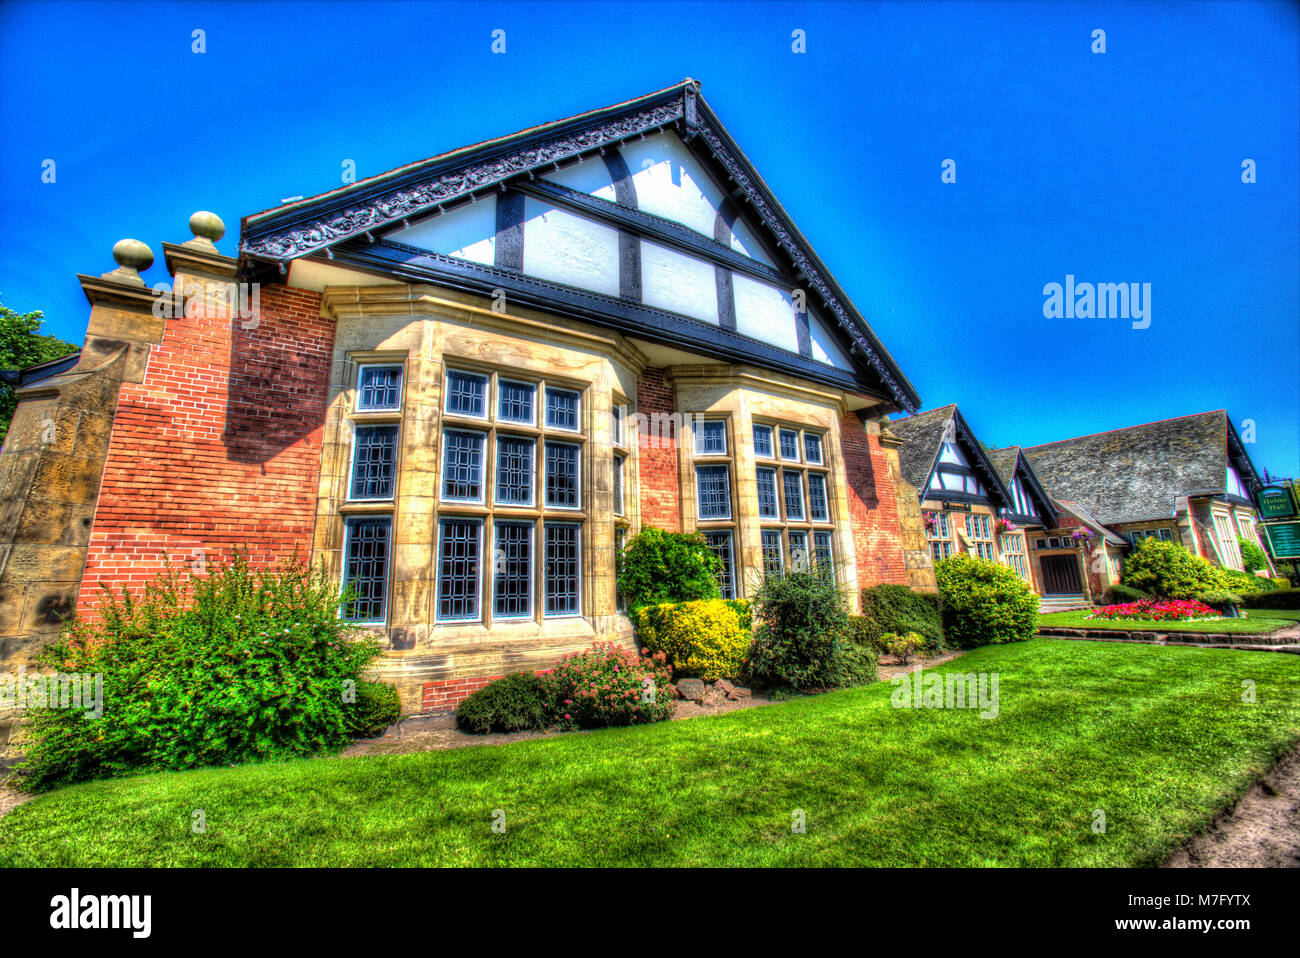 Village of Port Sunlight, England. Artistic view of the early 20th century William and Segar Owen designed Hulme - Stock Image